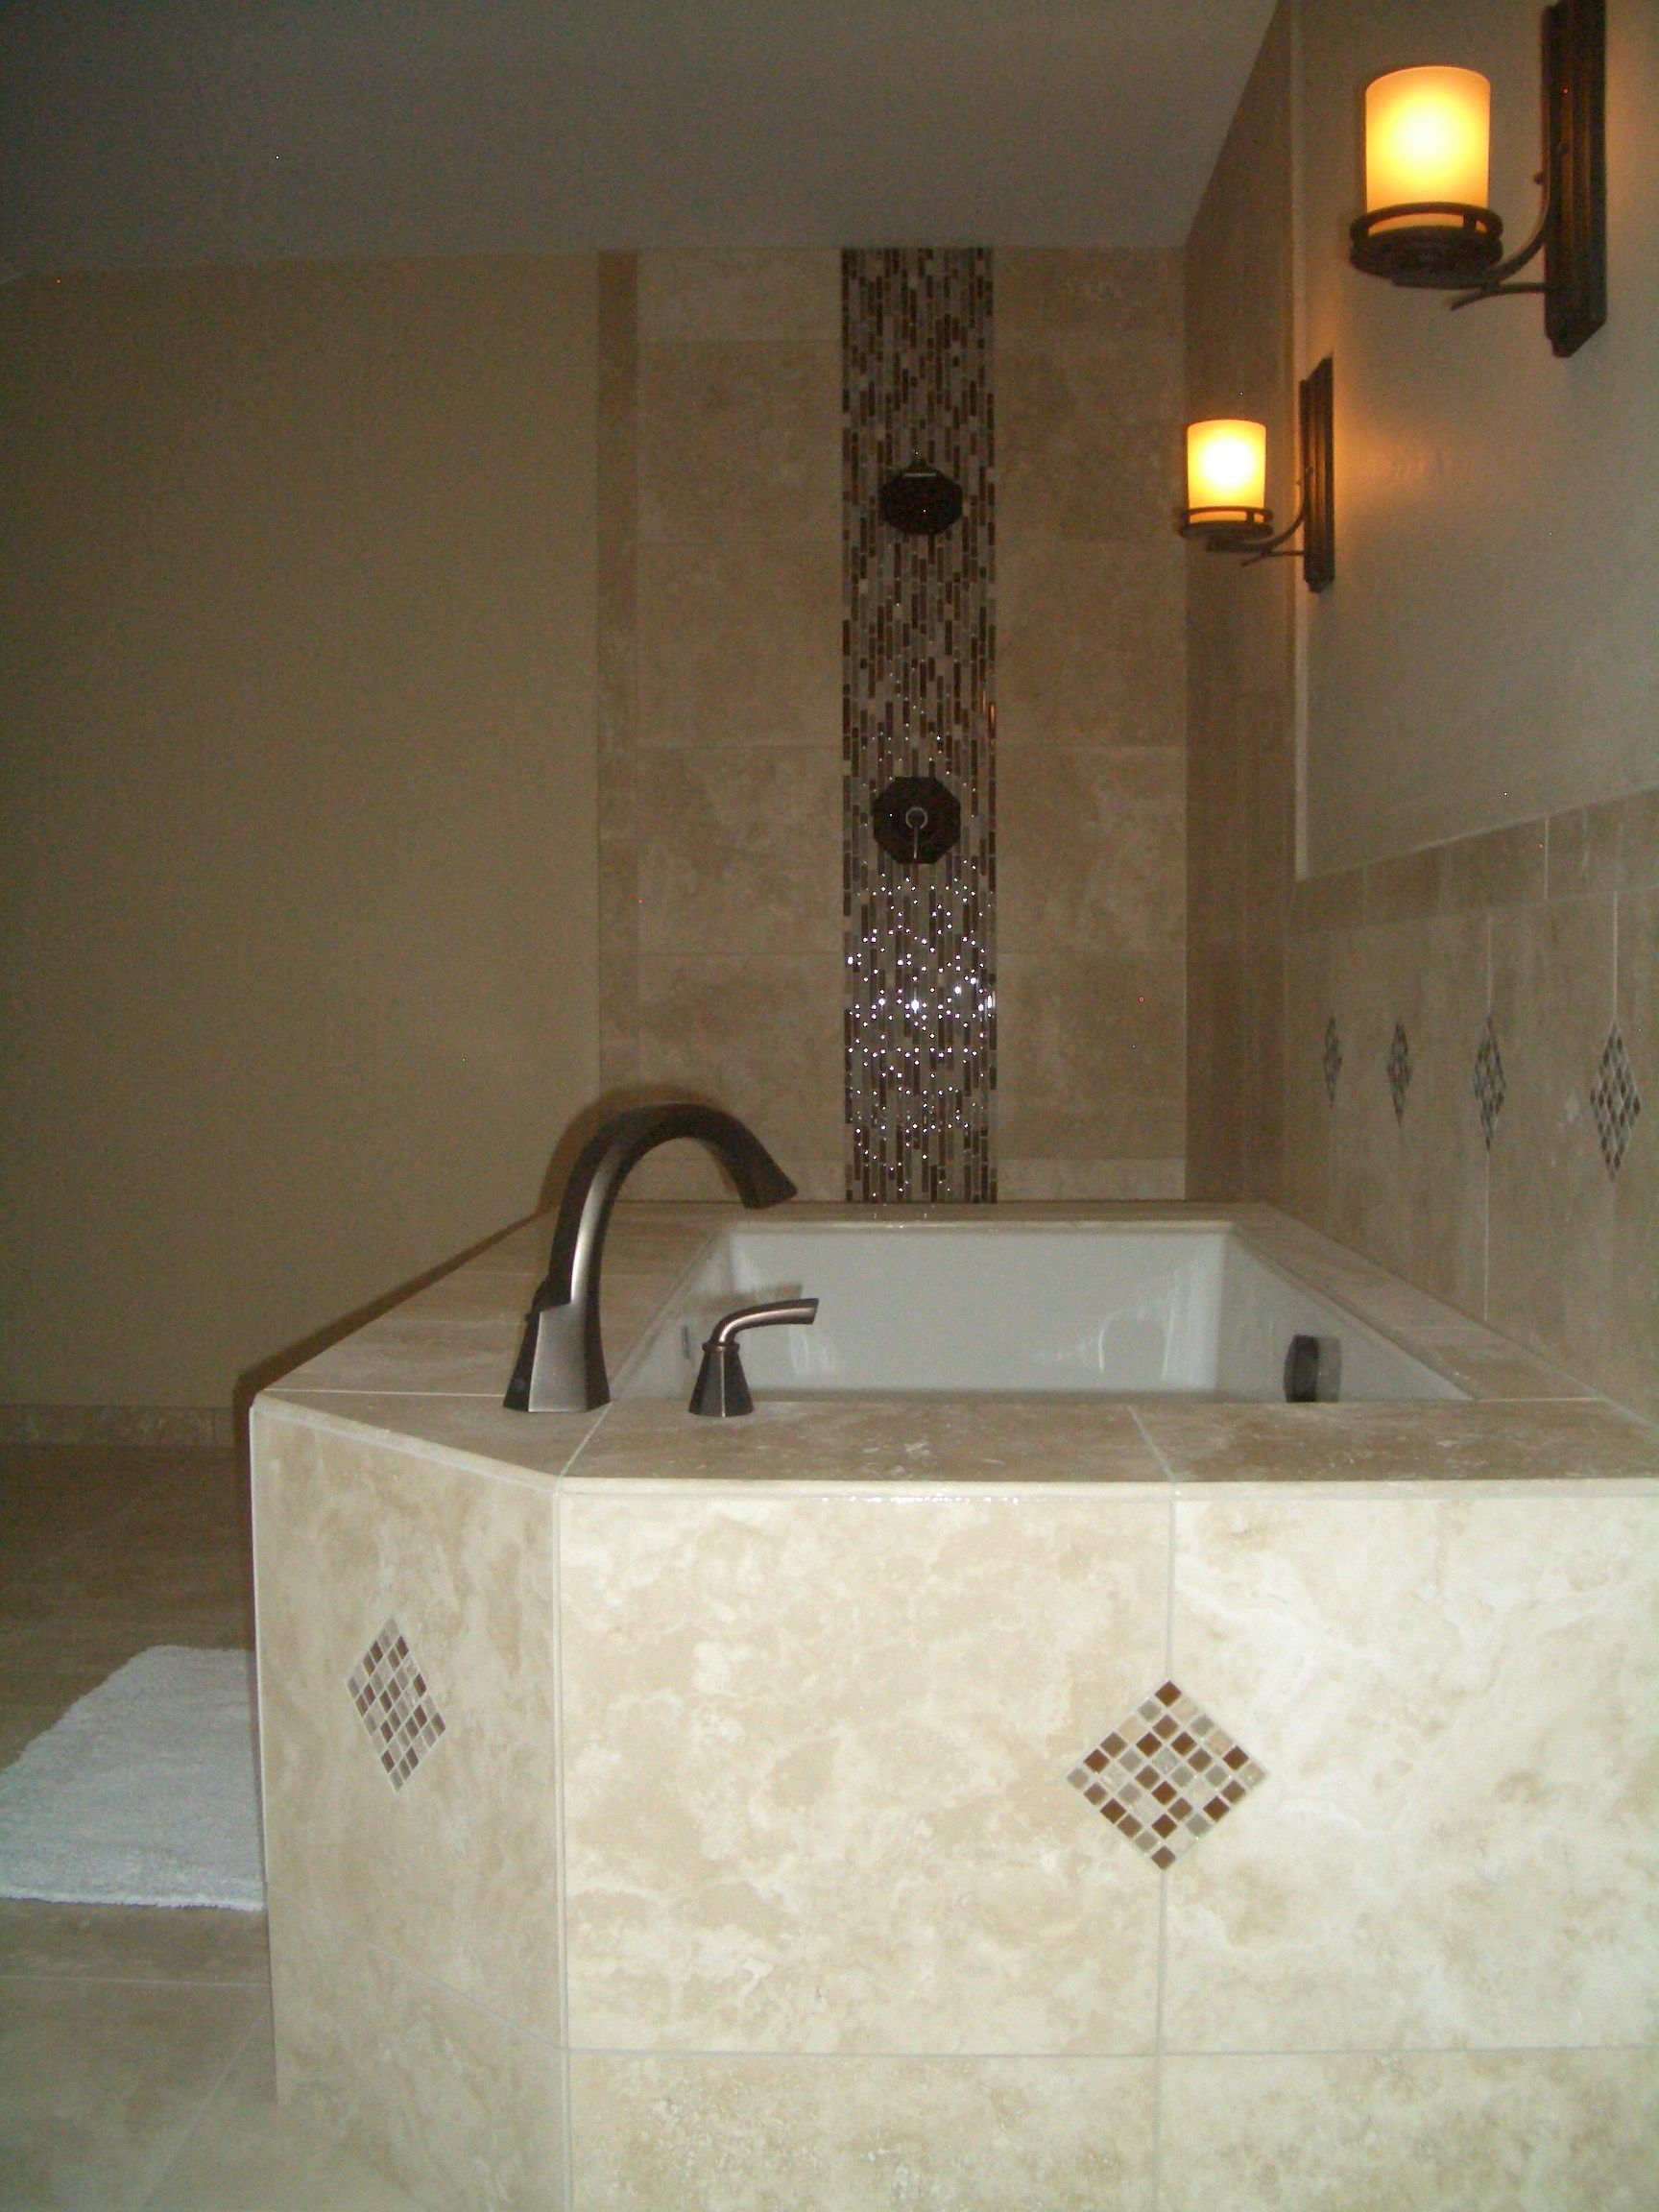 Completed access panel Tile around bathtub, Tile